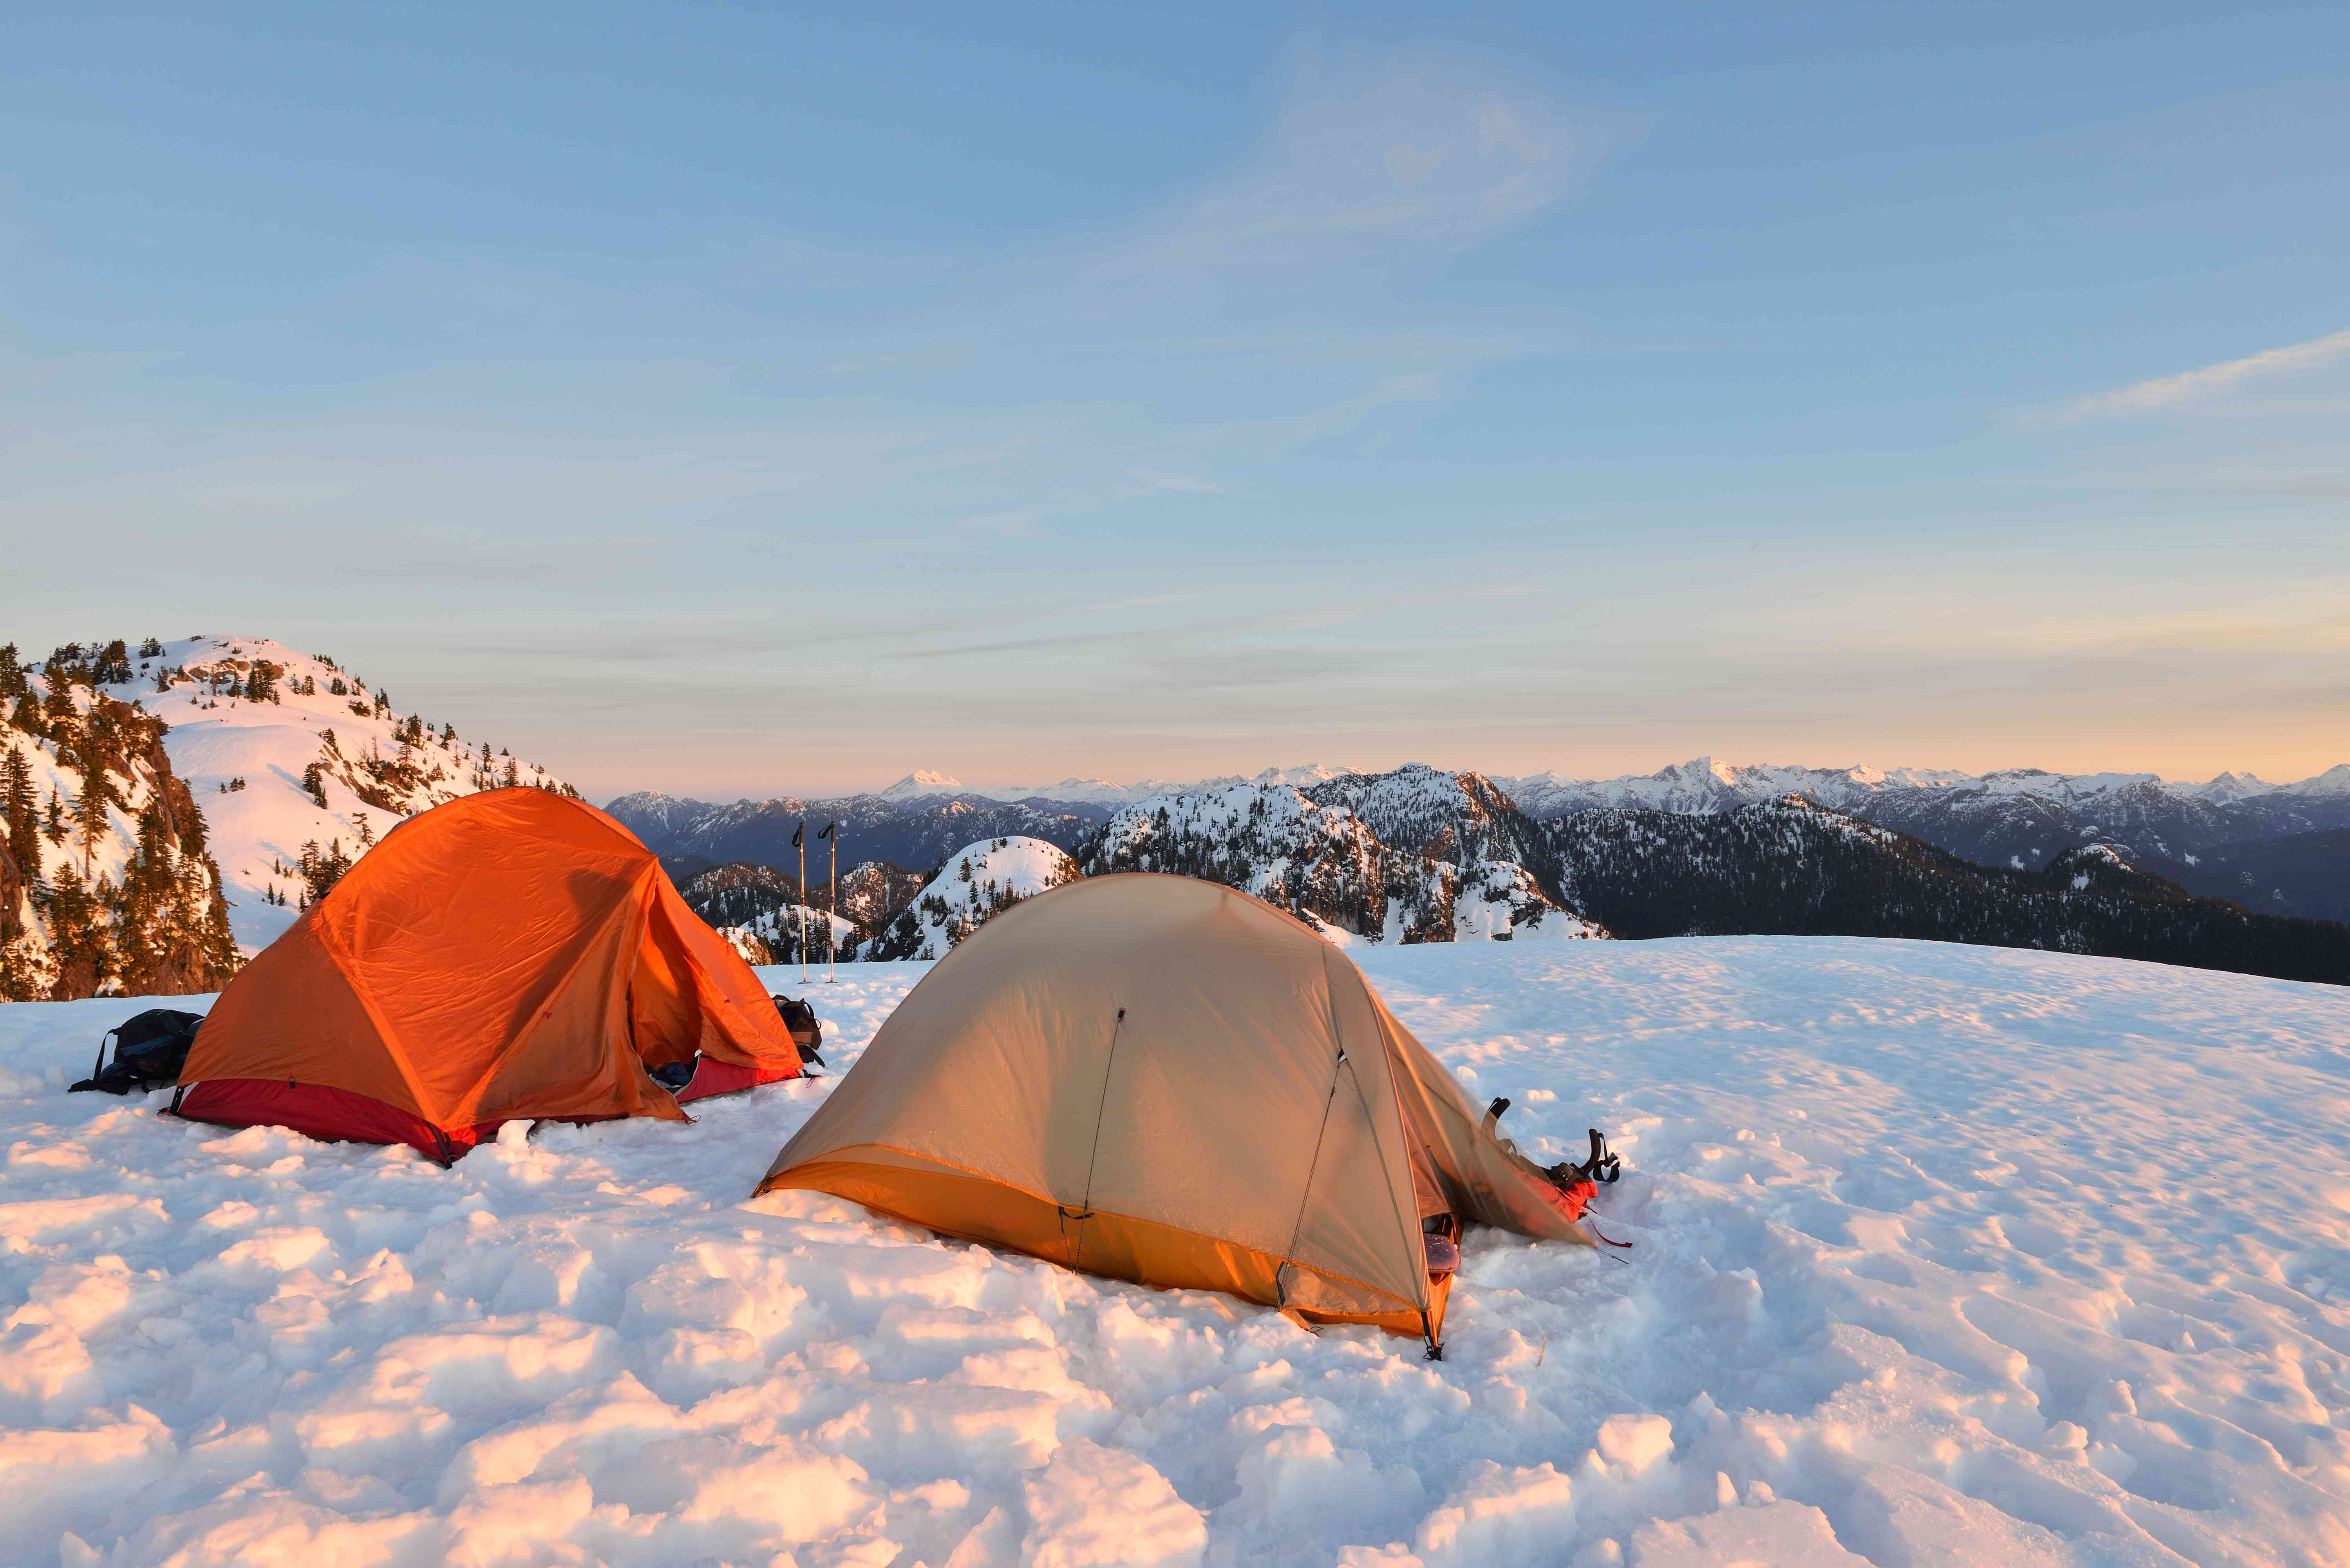 sunrise warms up tents at Mount Seymour, British Columbia, Canada